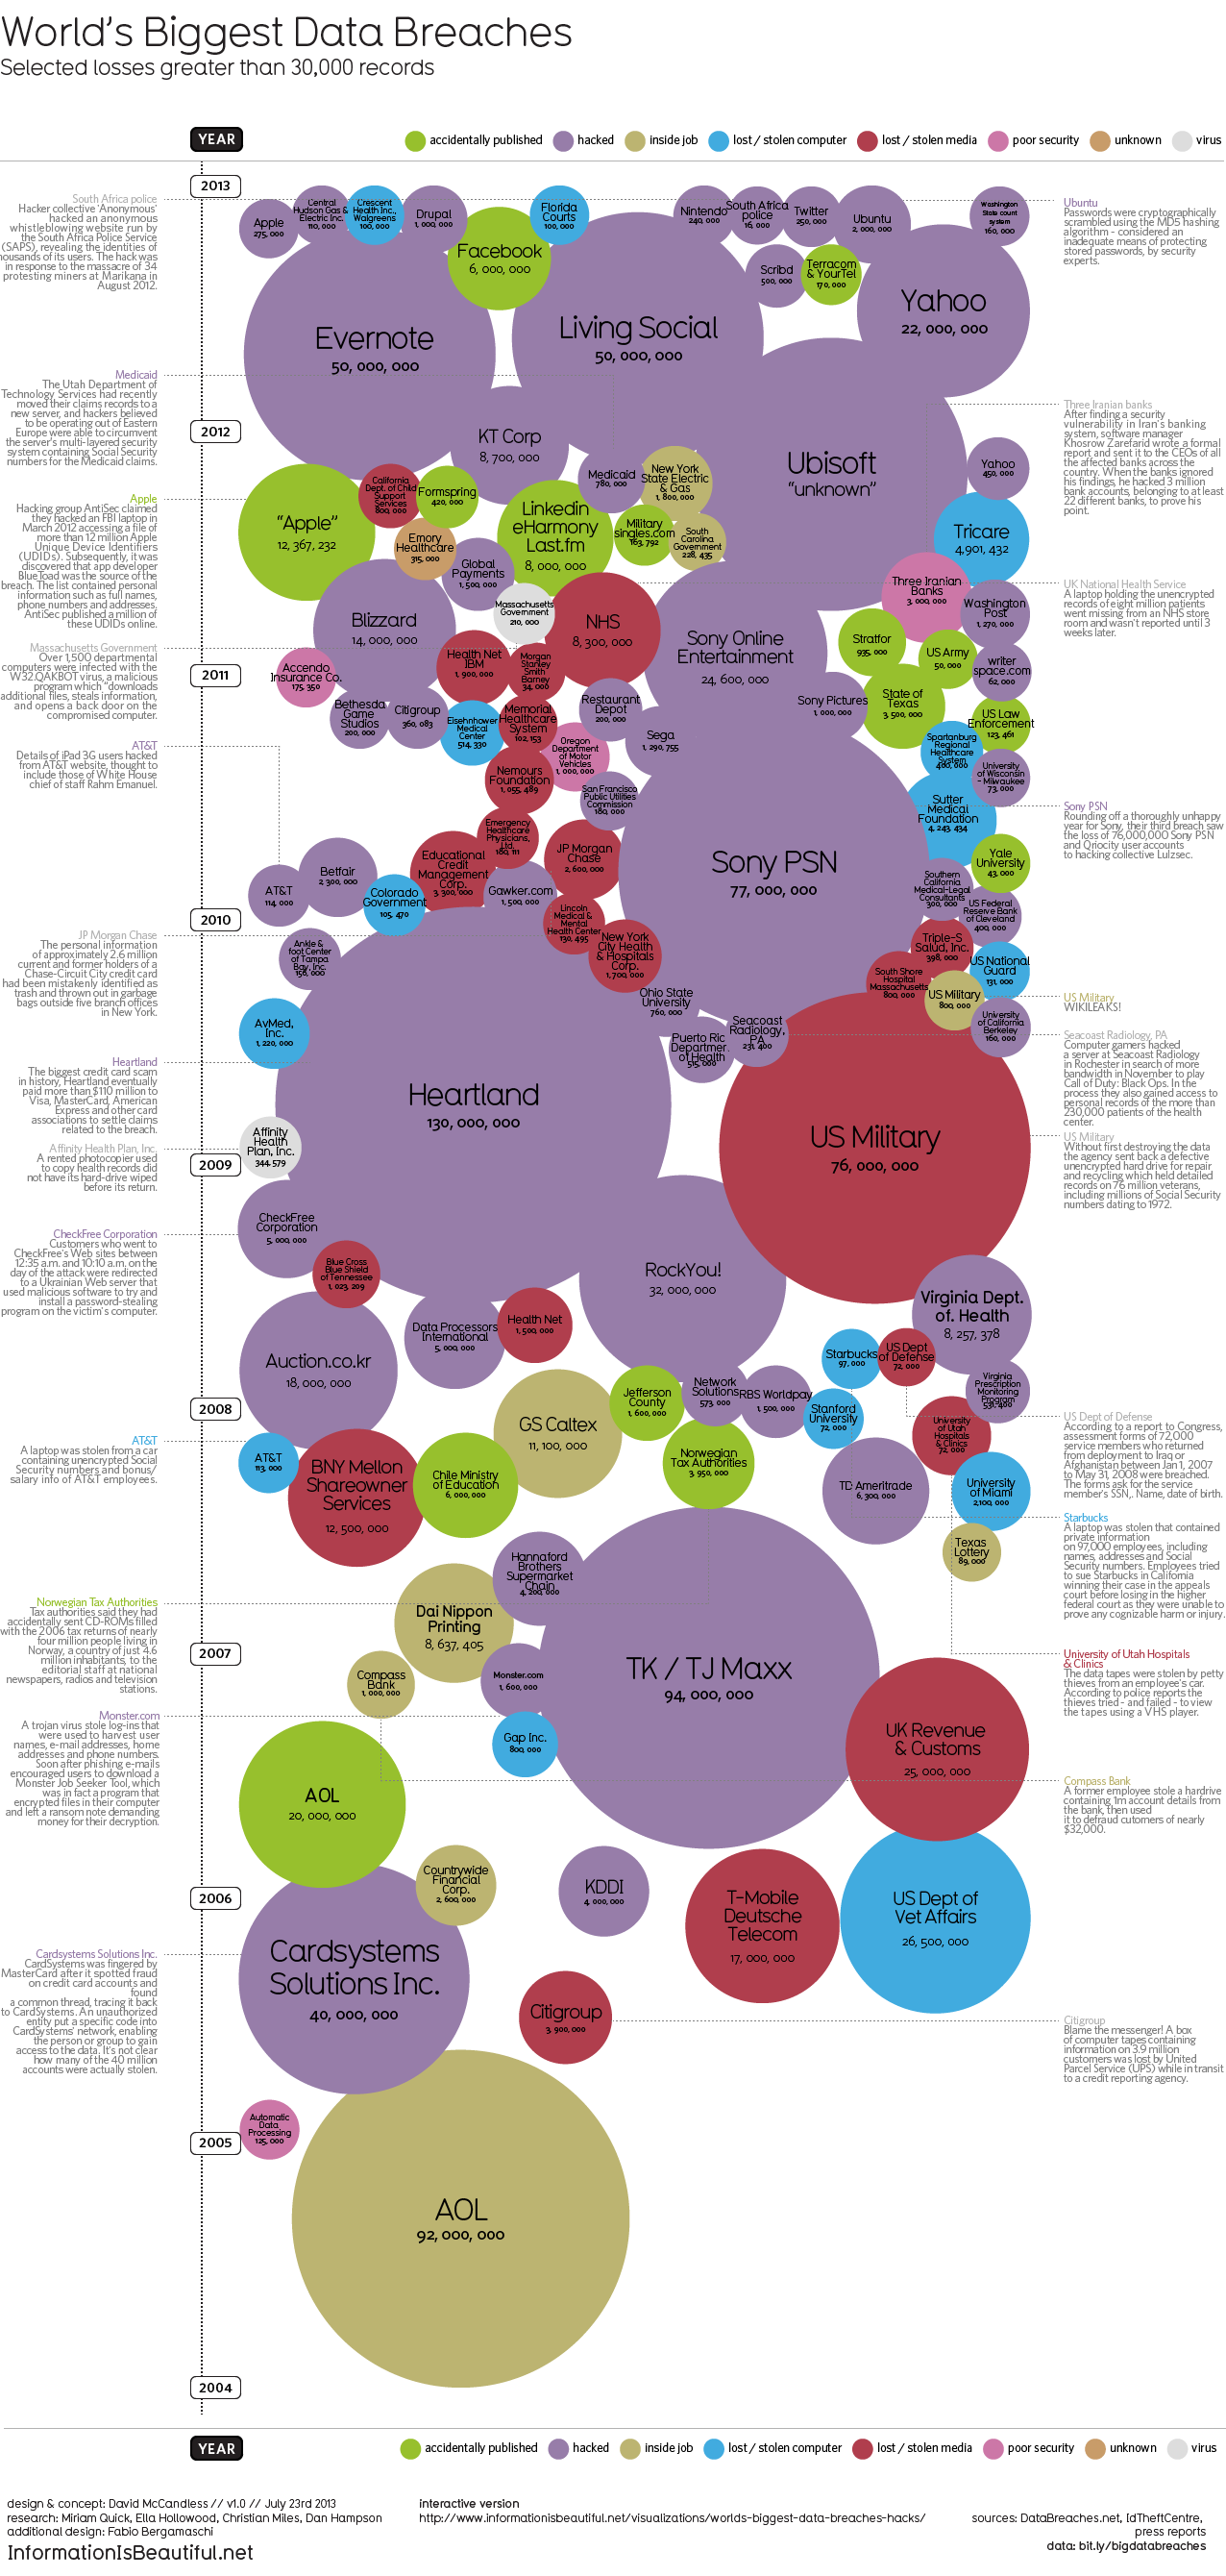 The History Of Data Breaches Digital Guardian Security Breach Slatecom Visualizes Largest In